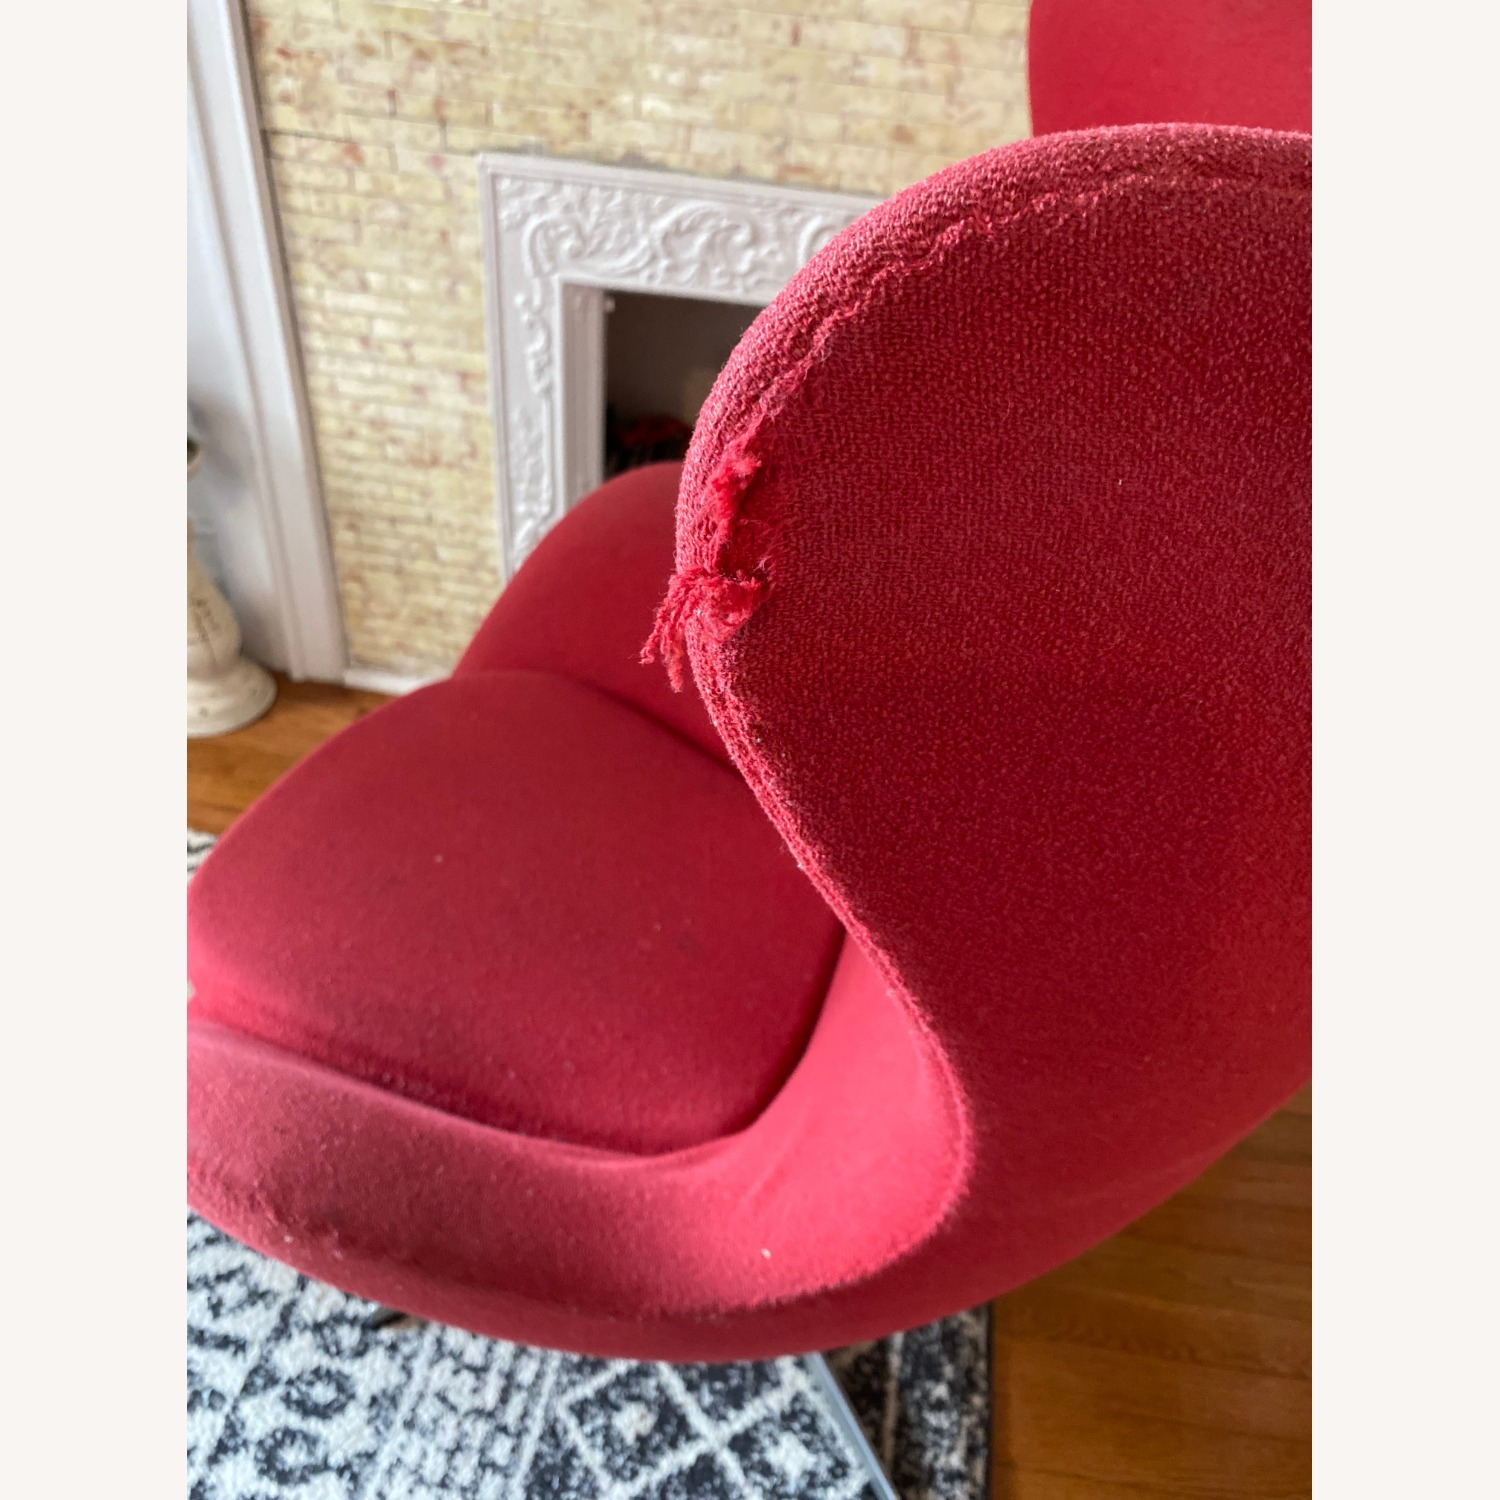 Fritz Hanson Egg Chair and footstool - image-4